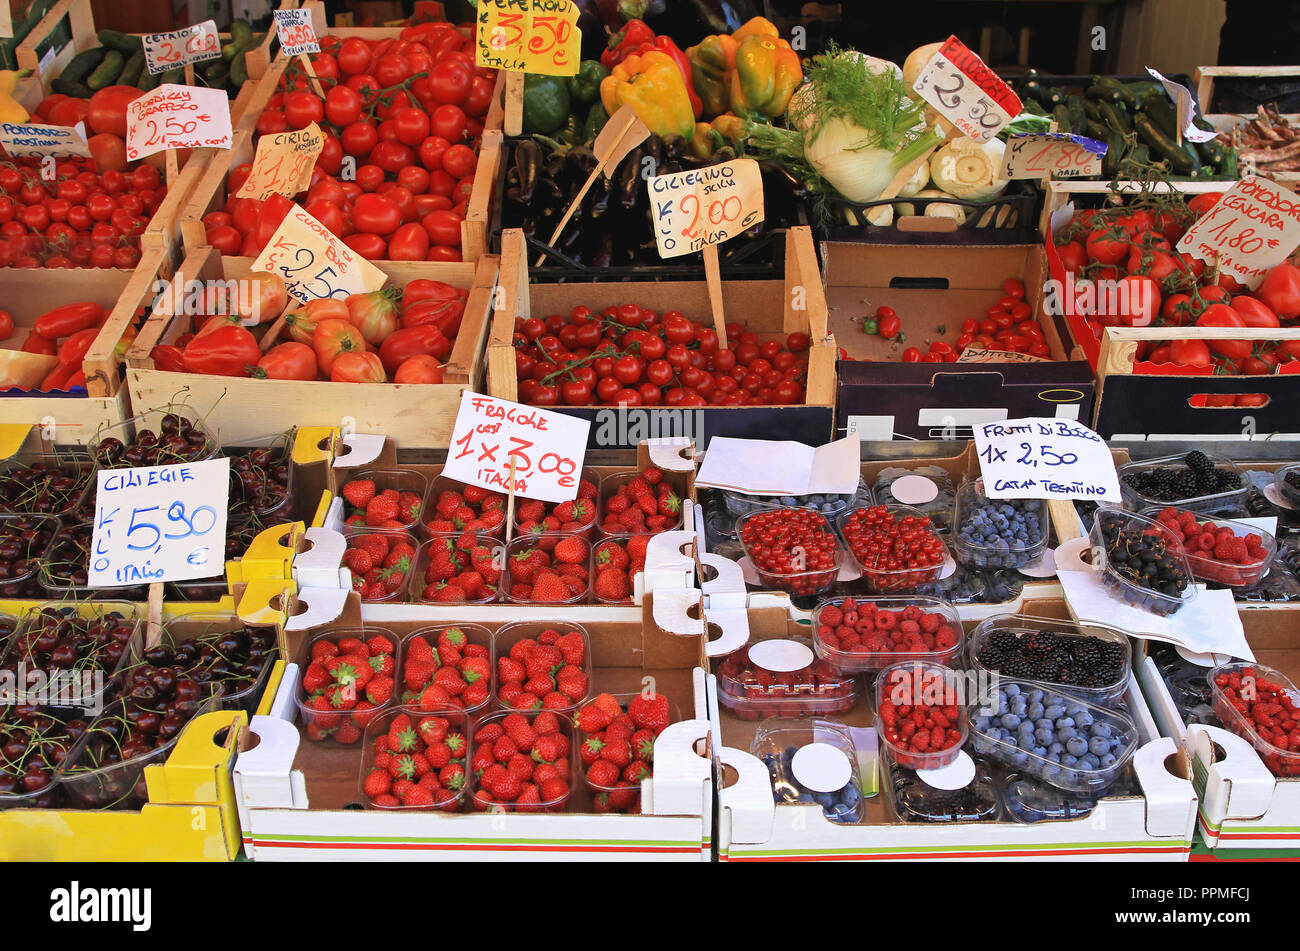 All kind of berry fruits at farmers market stall - Stock Image